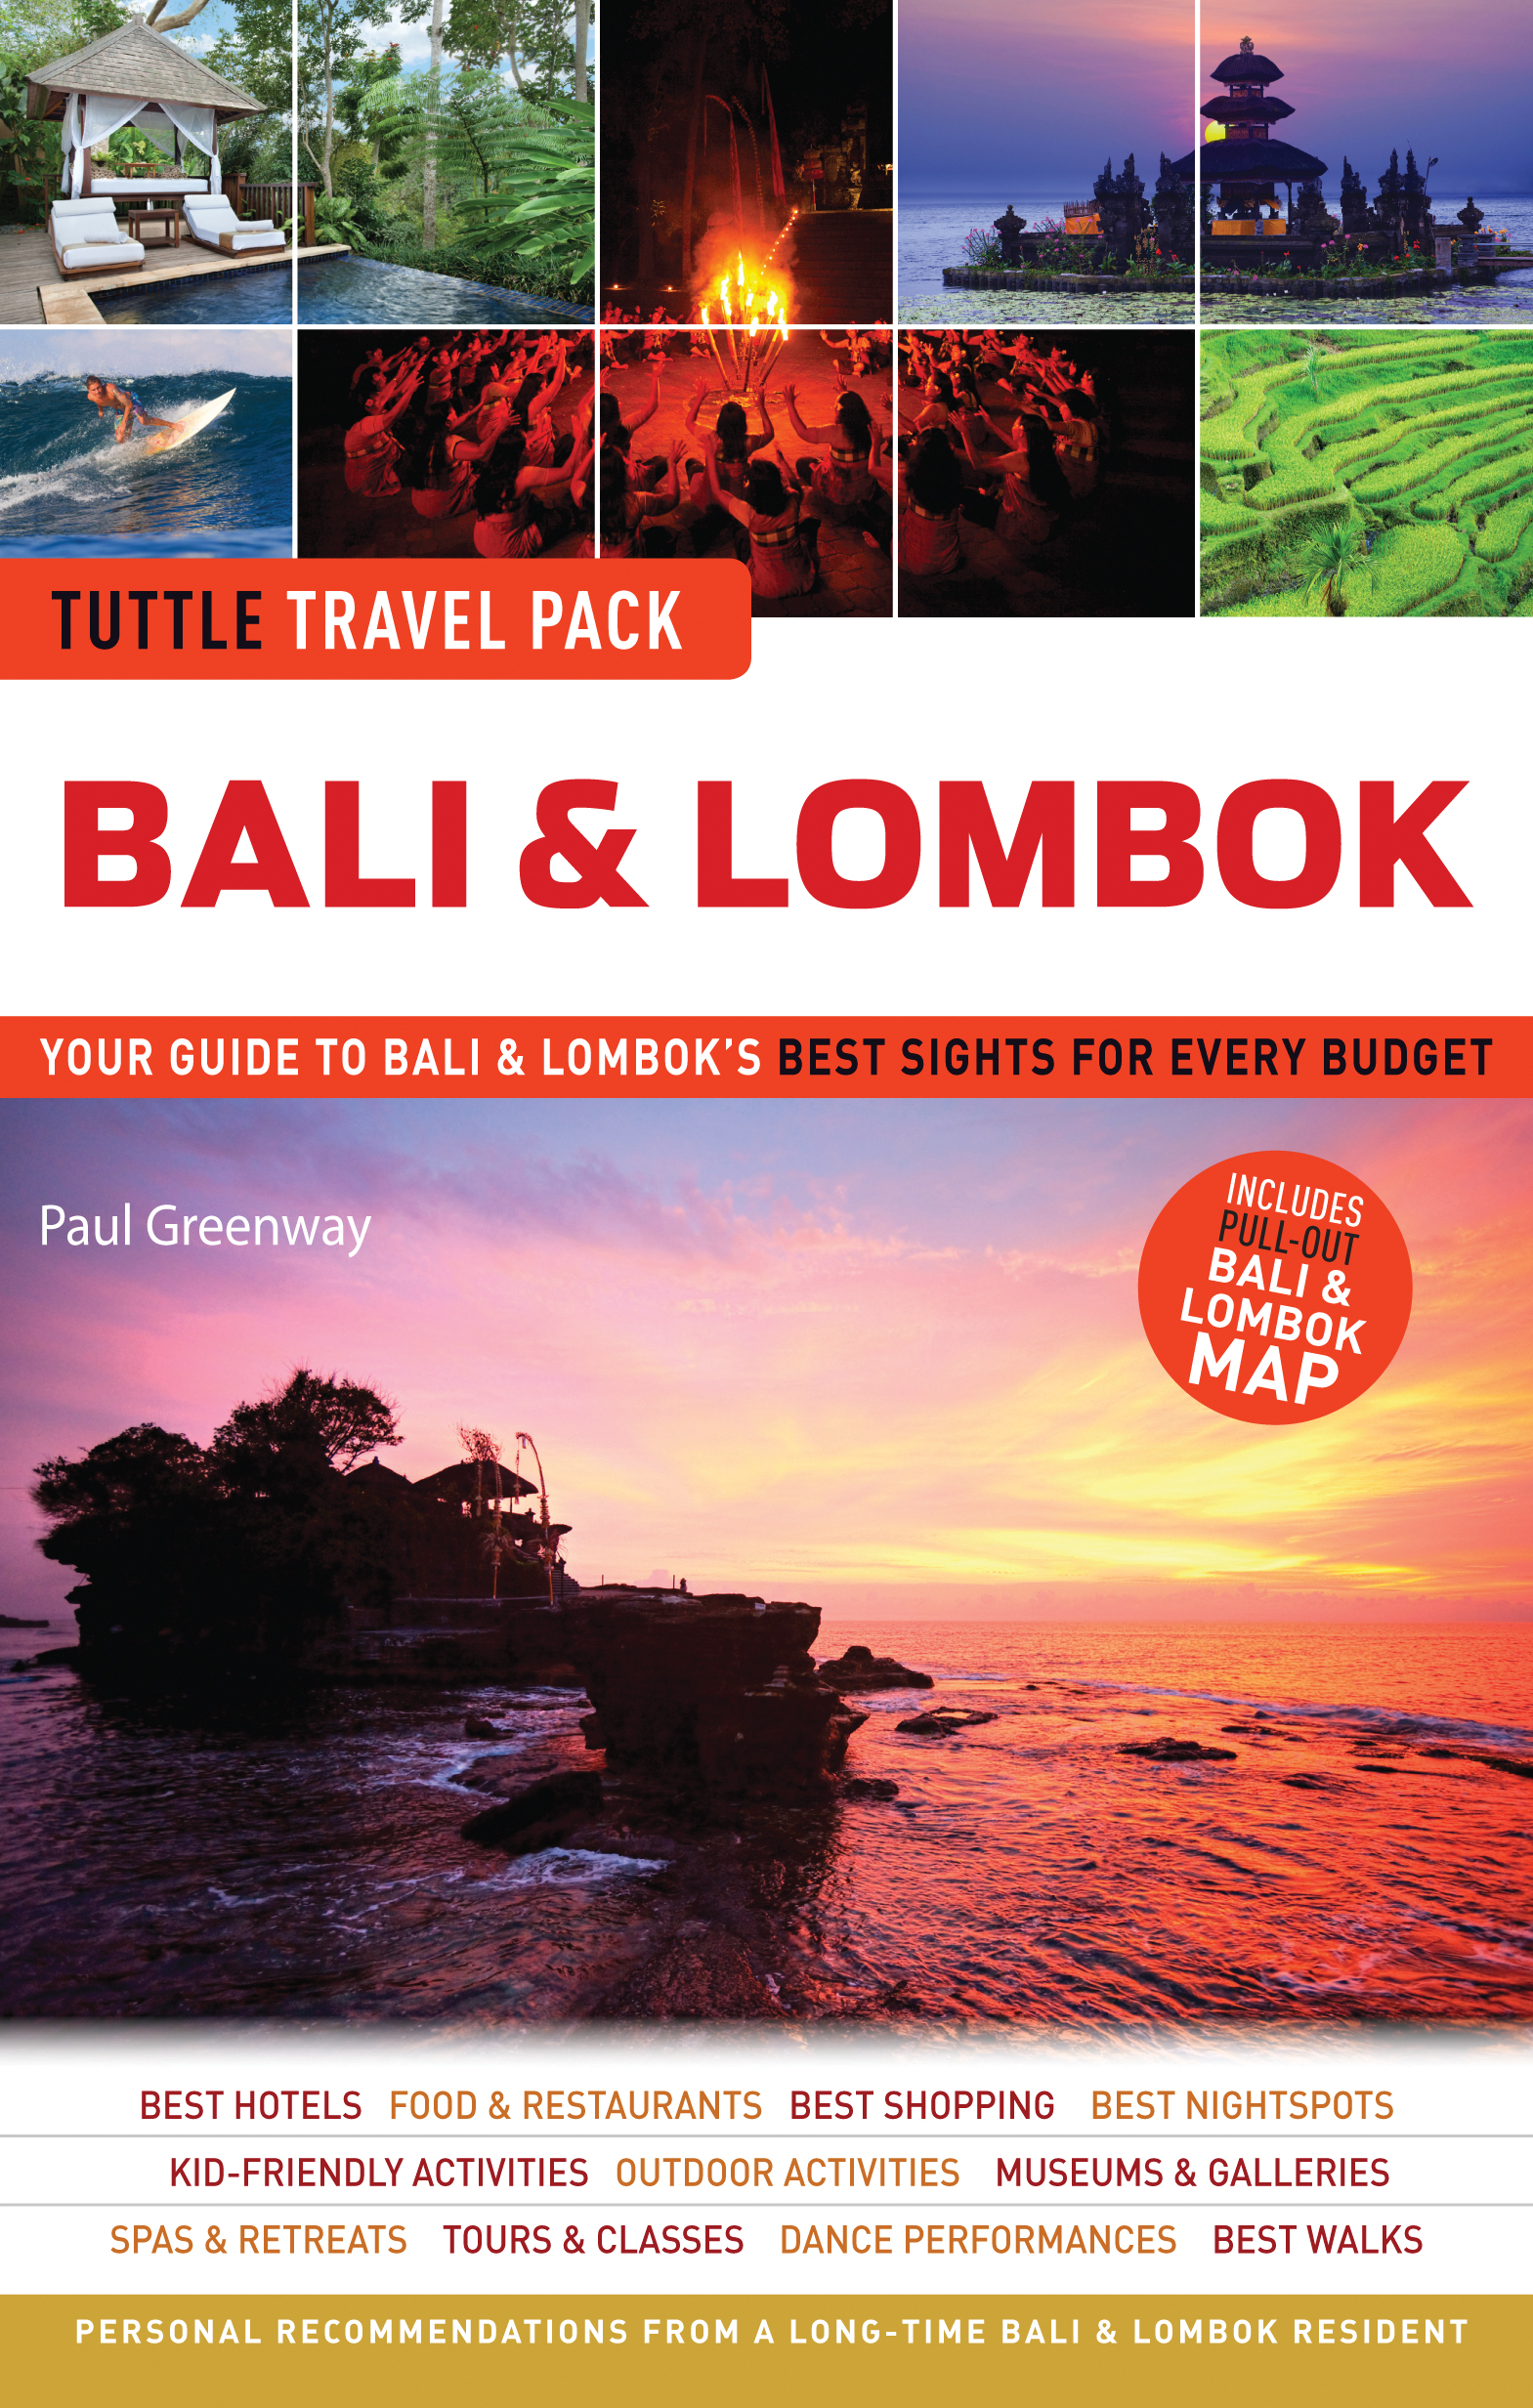 Tuttle-travel-pack-bali-lombok-9780804842112_hr